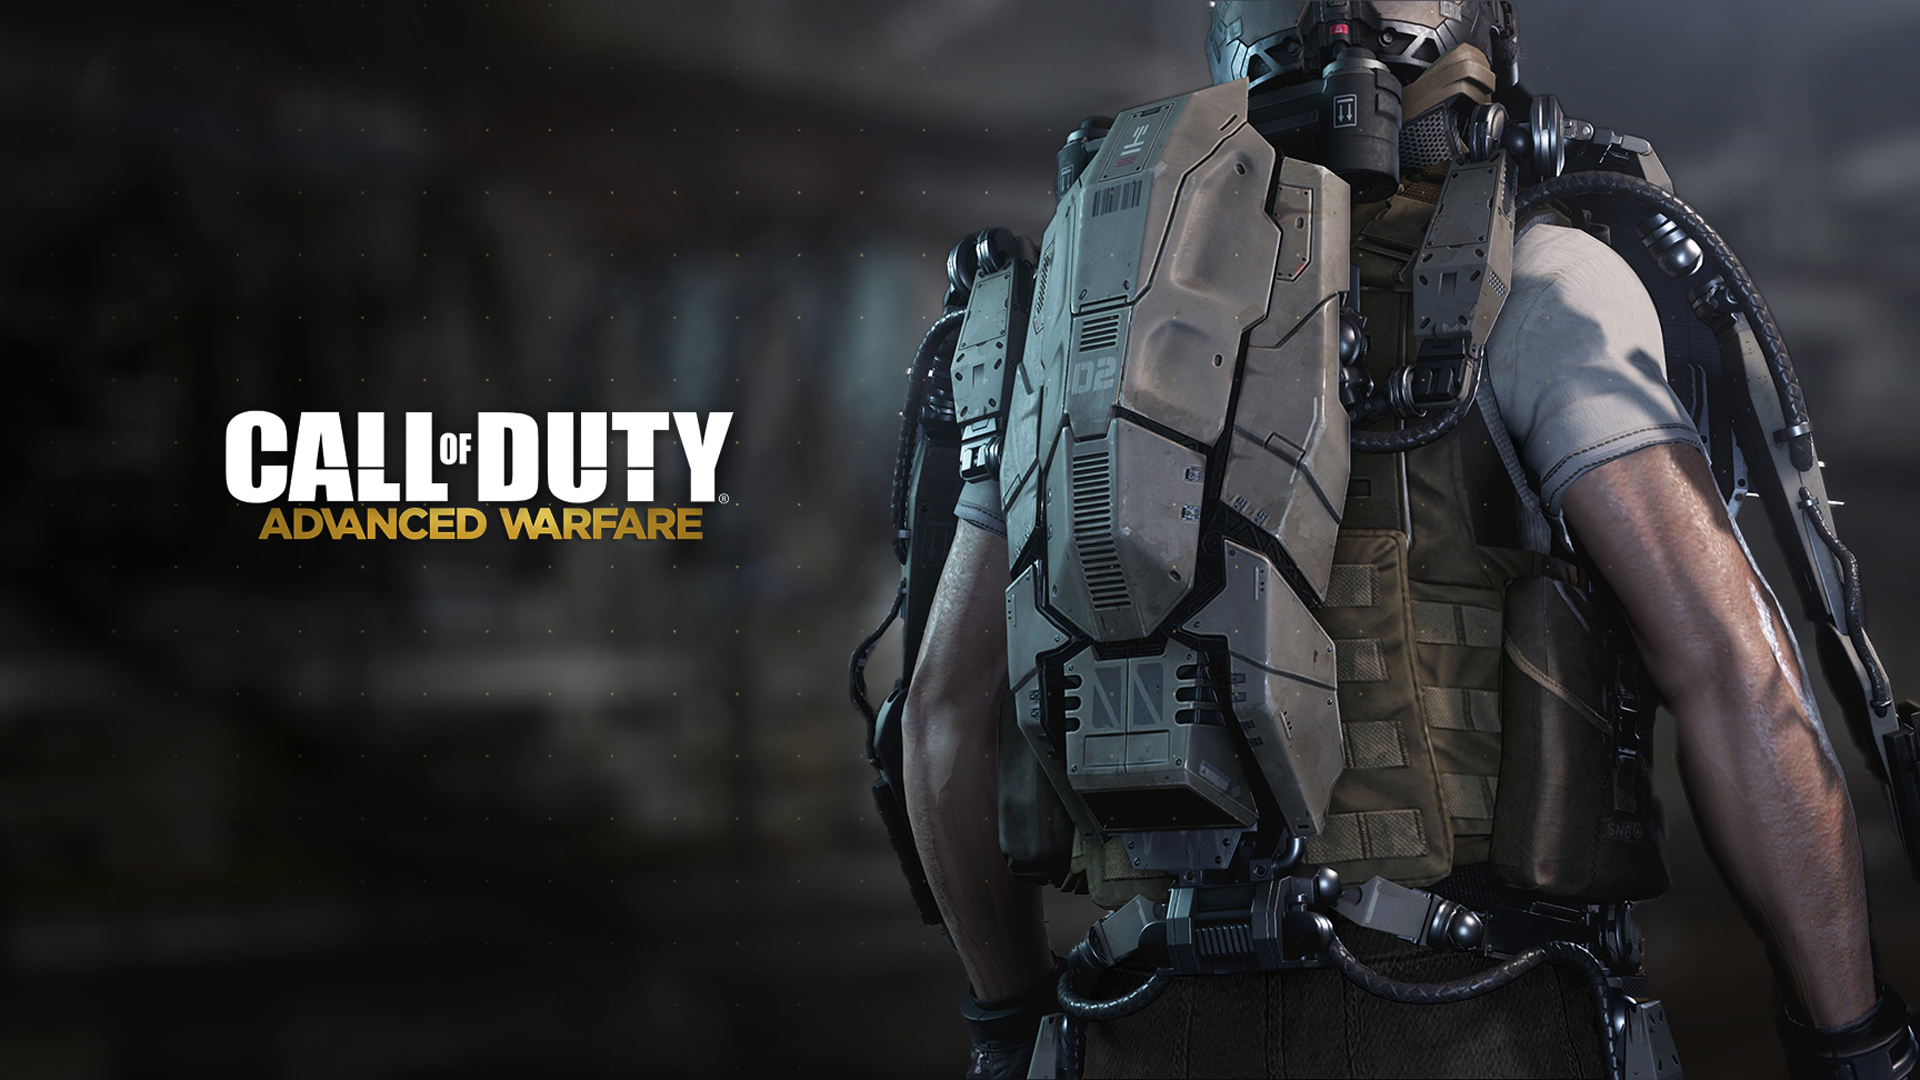 call of duty advanced warfare wallpaper